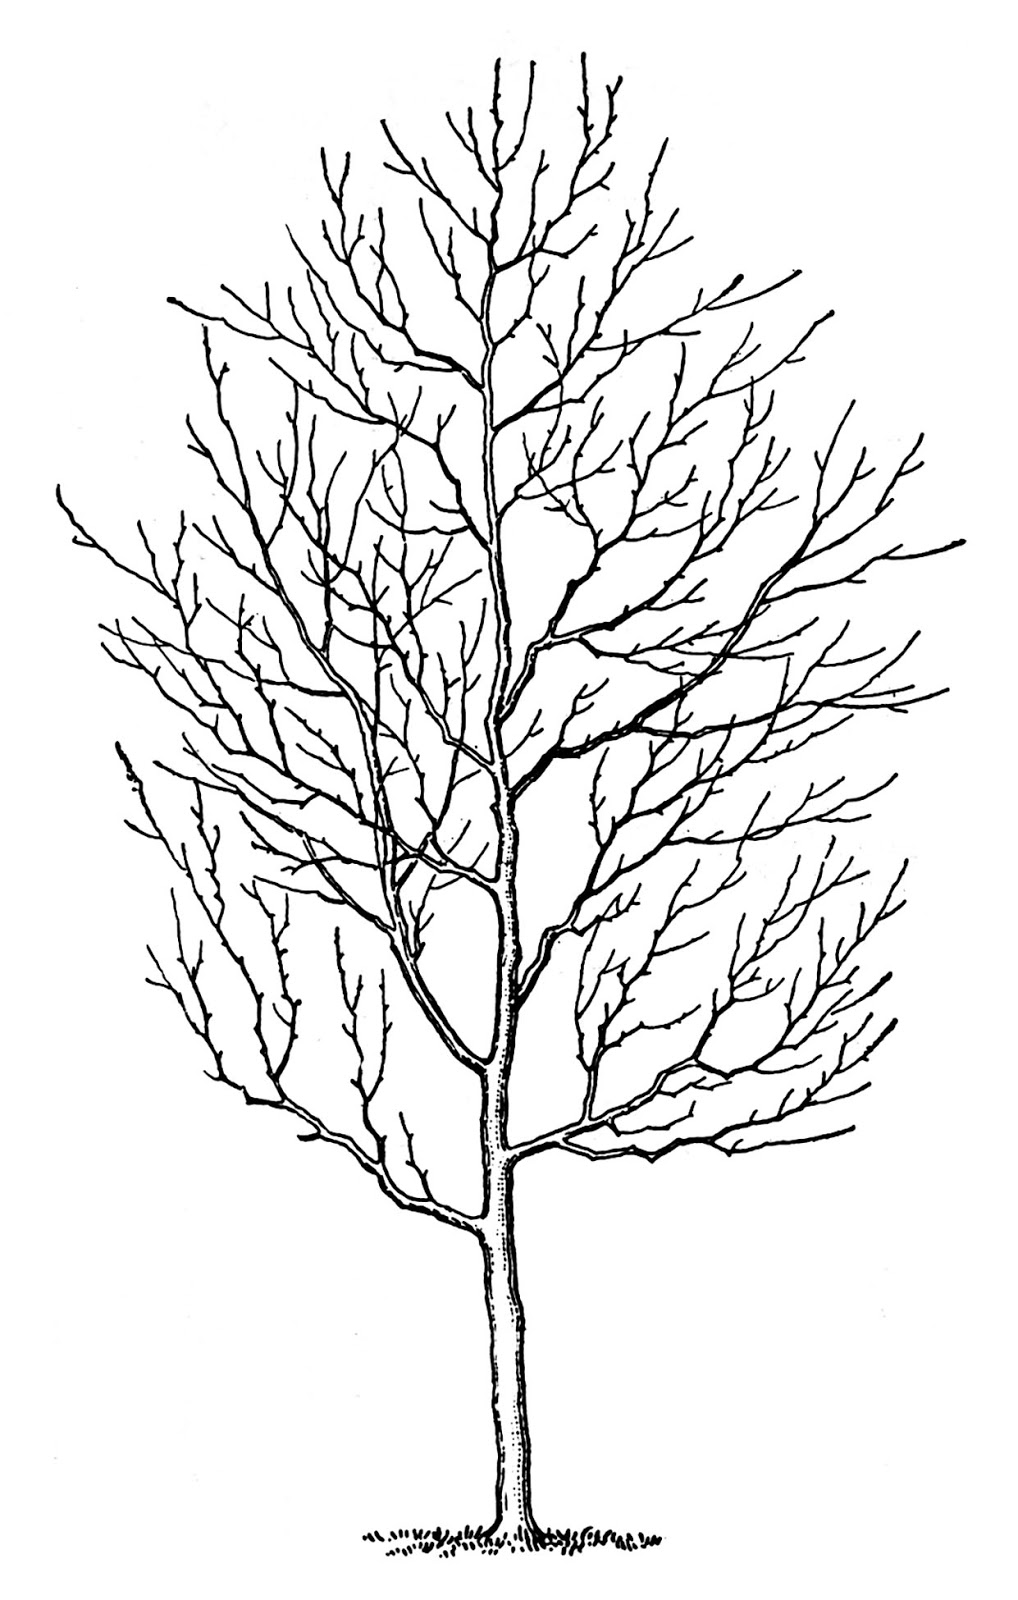 Tree No Leaves - ClipArt Best